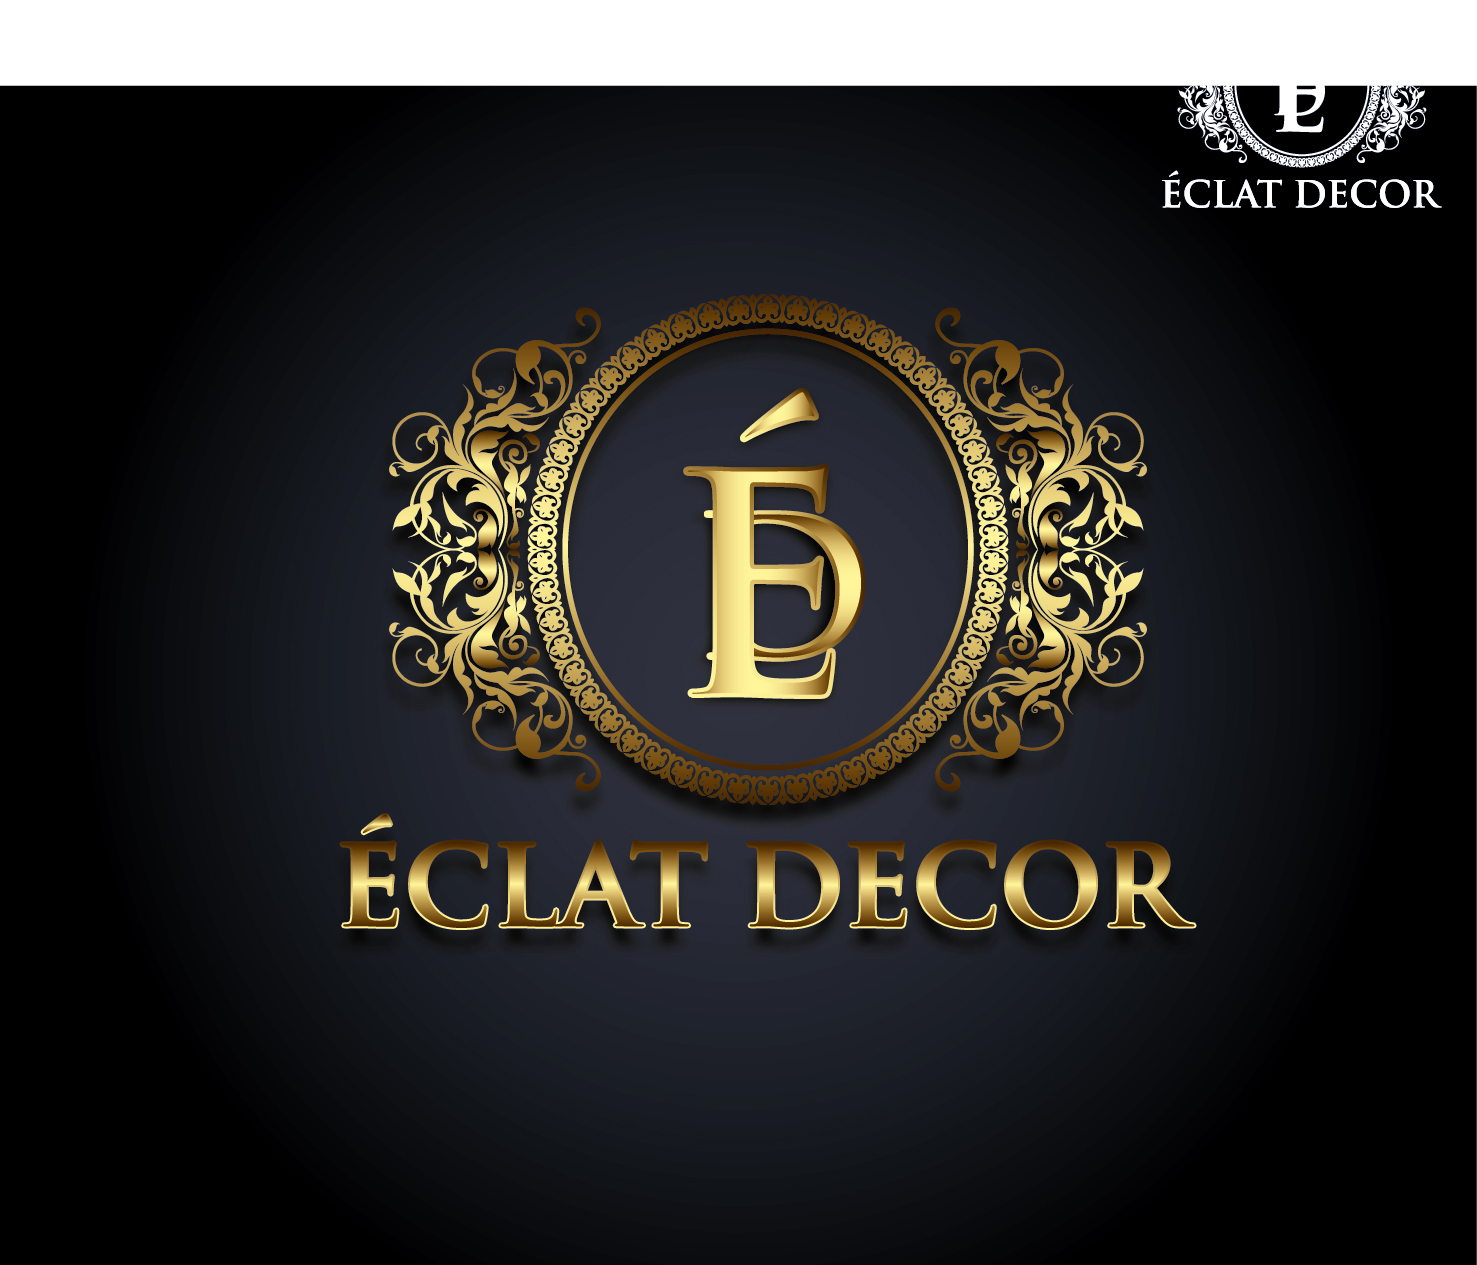 Logo Design by VENTSISLAV KOVACHEV - Entry No. 44 in the Logo Design Contest Imaginative Logo Design for Éclat Decor.